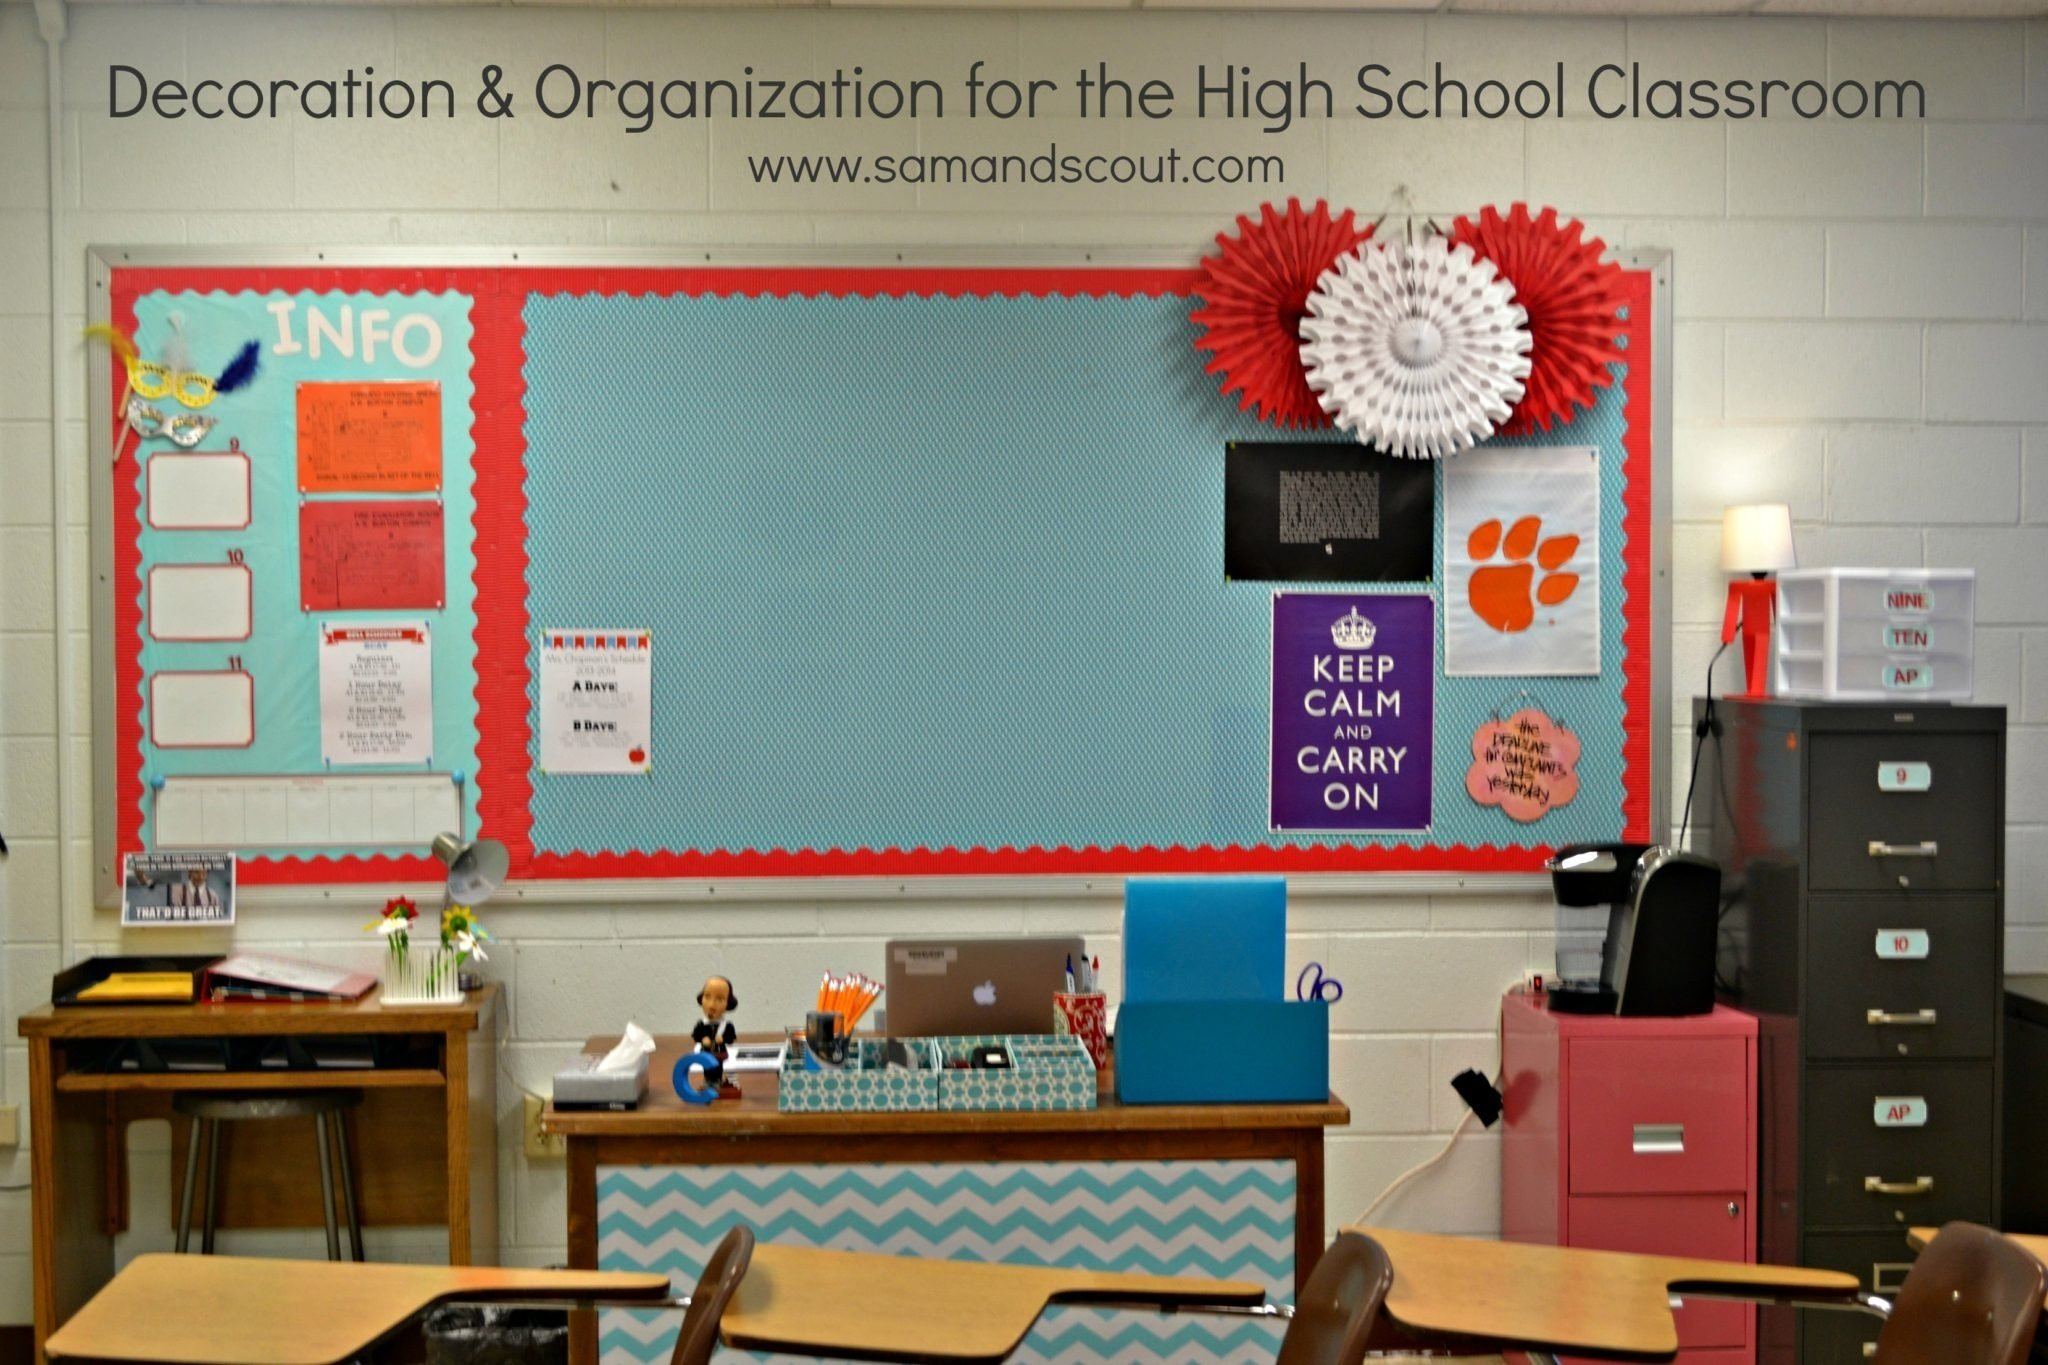 decoration & organization for the high school classroom - teaching